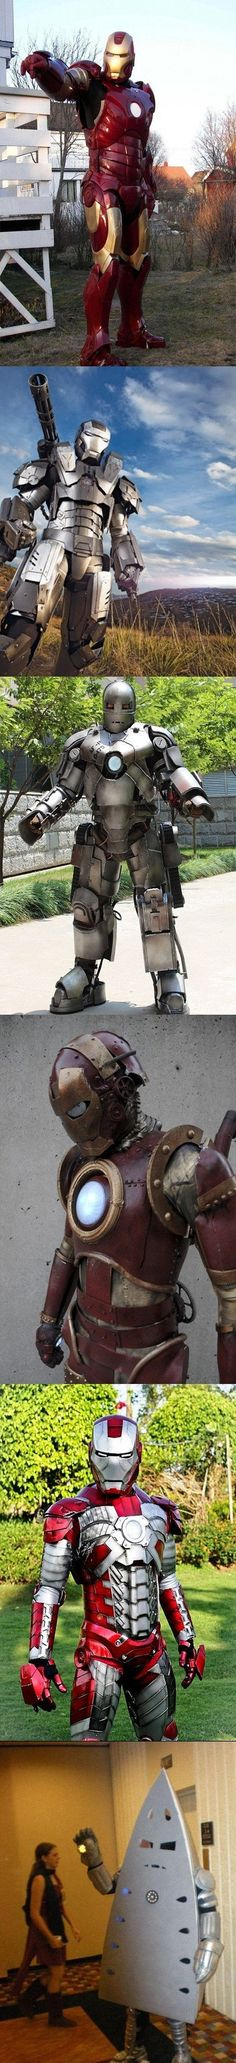 Awesome Iron Man Cosplay